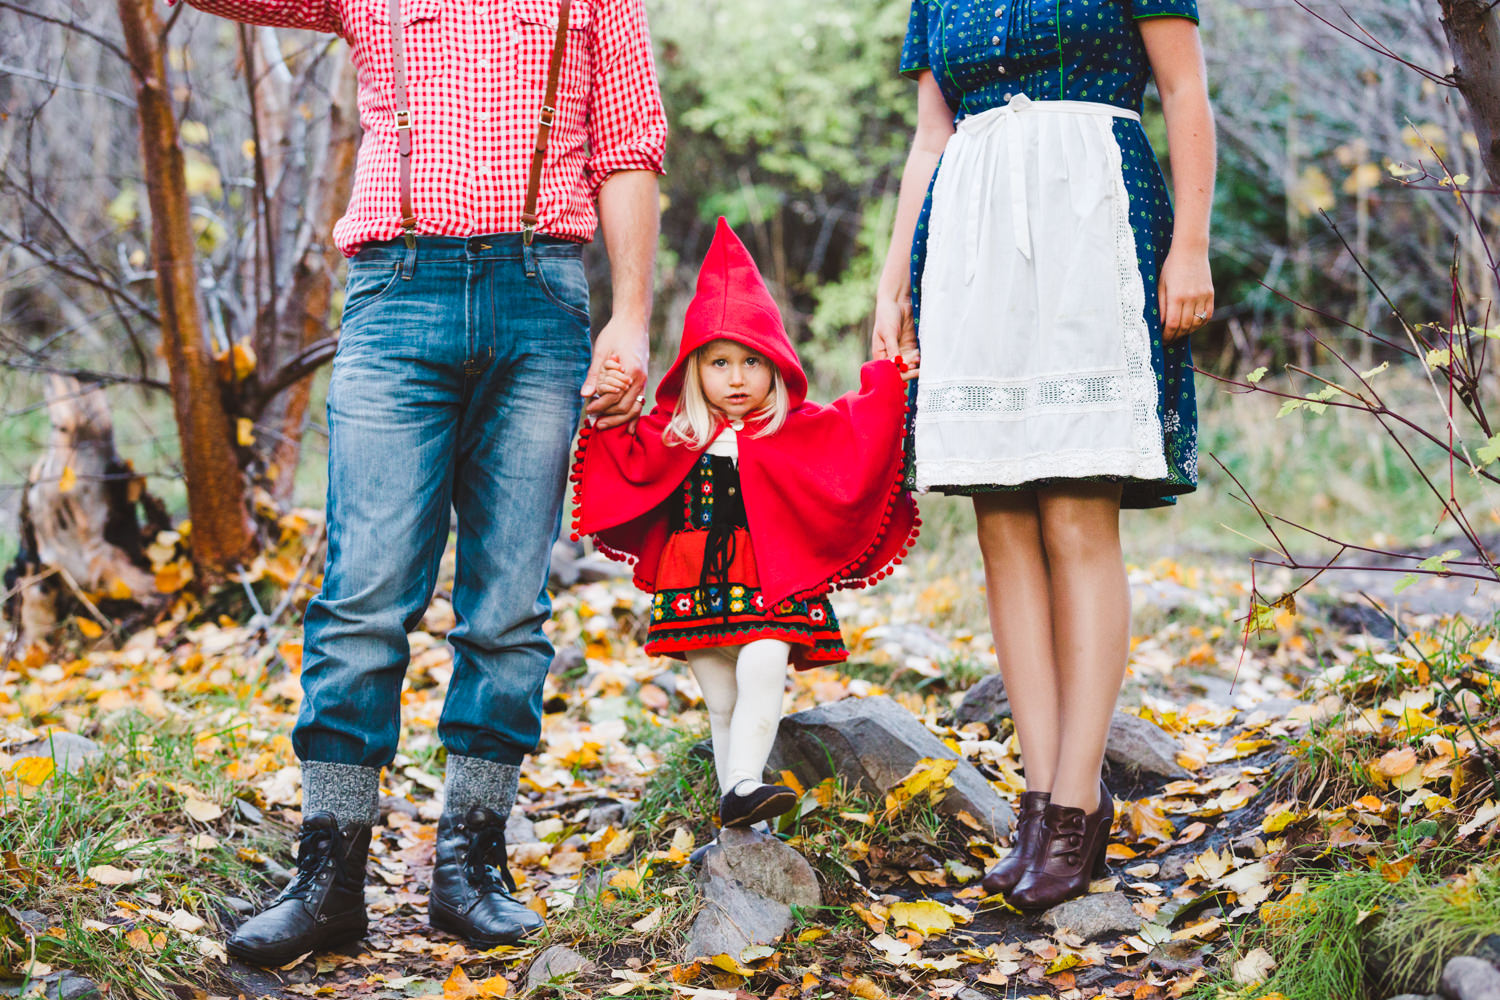 kelowna-halloween-family-photoshoot-little-red-riding-hood-photography-okanagan-halloween-family-photographers-julie-dorge (27 of 27).jpg